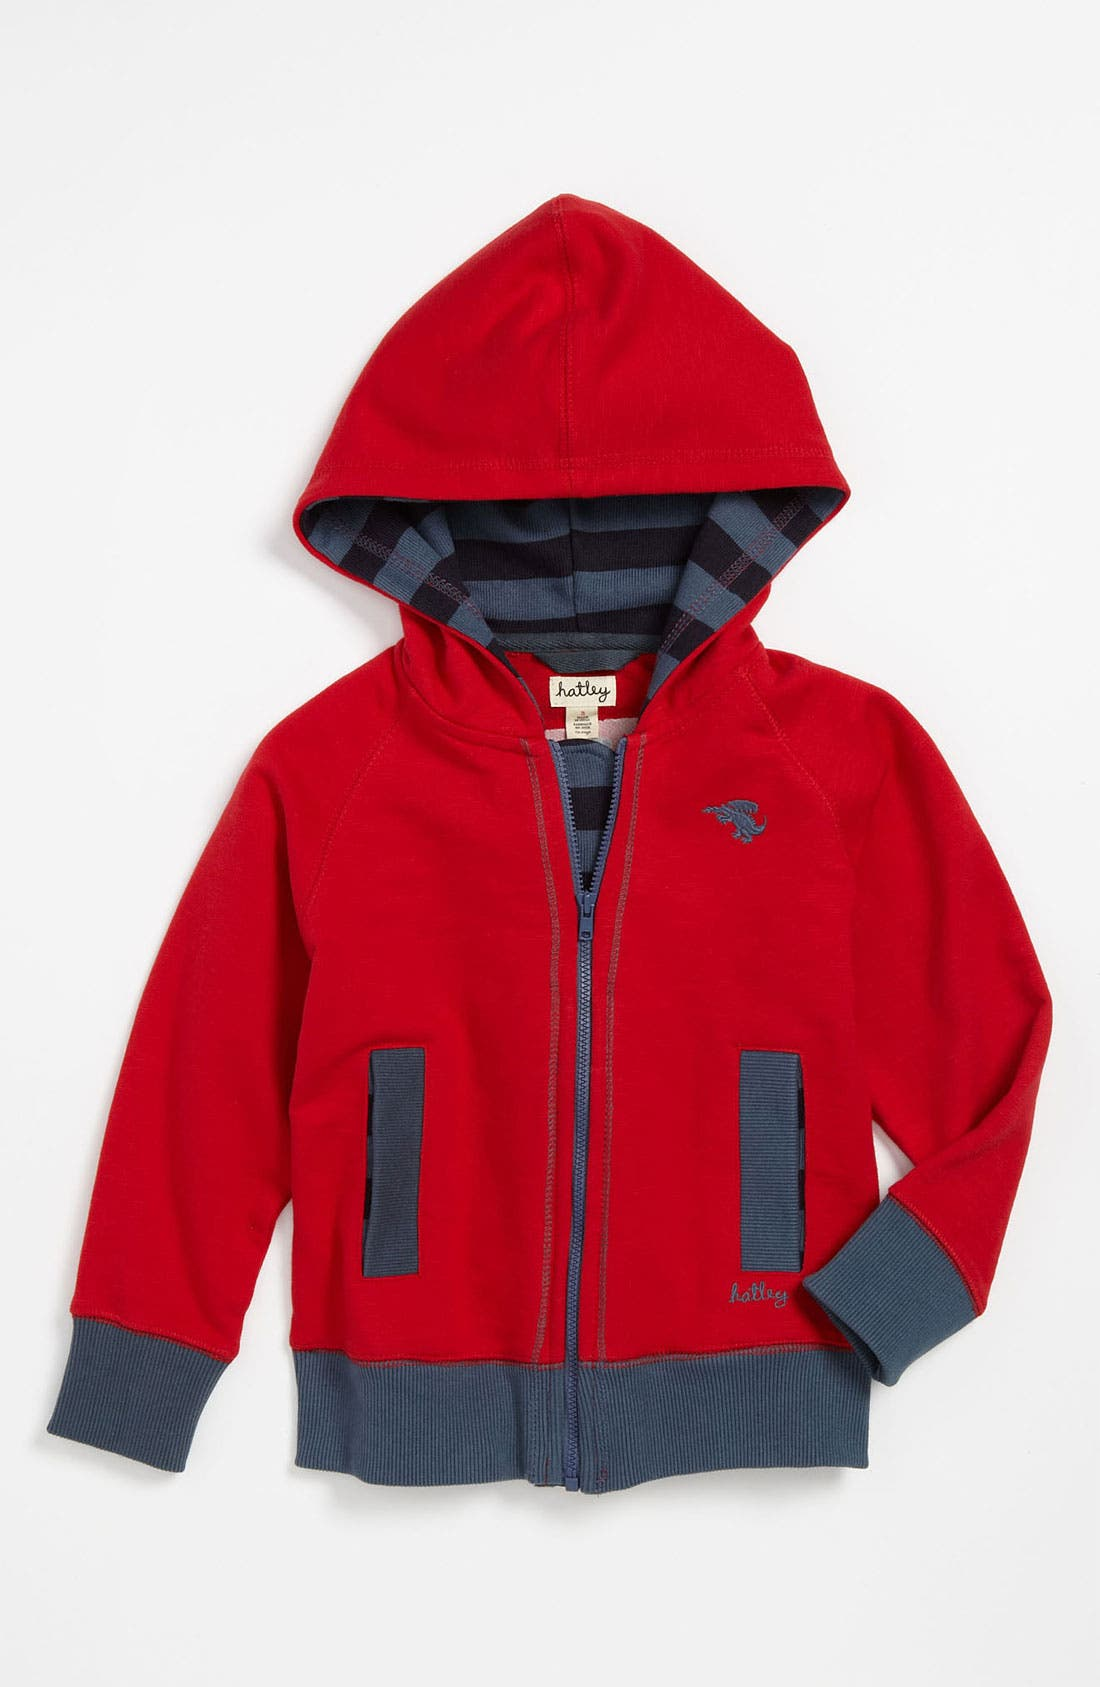 Alternate Image 1 Selected - Hatley 'Dragons' Hoodie (Toddler)